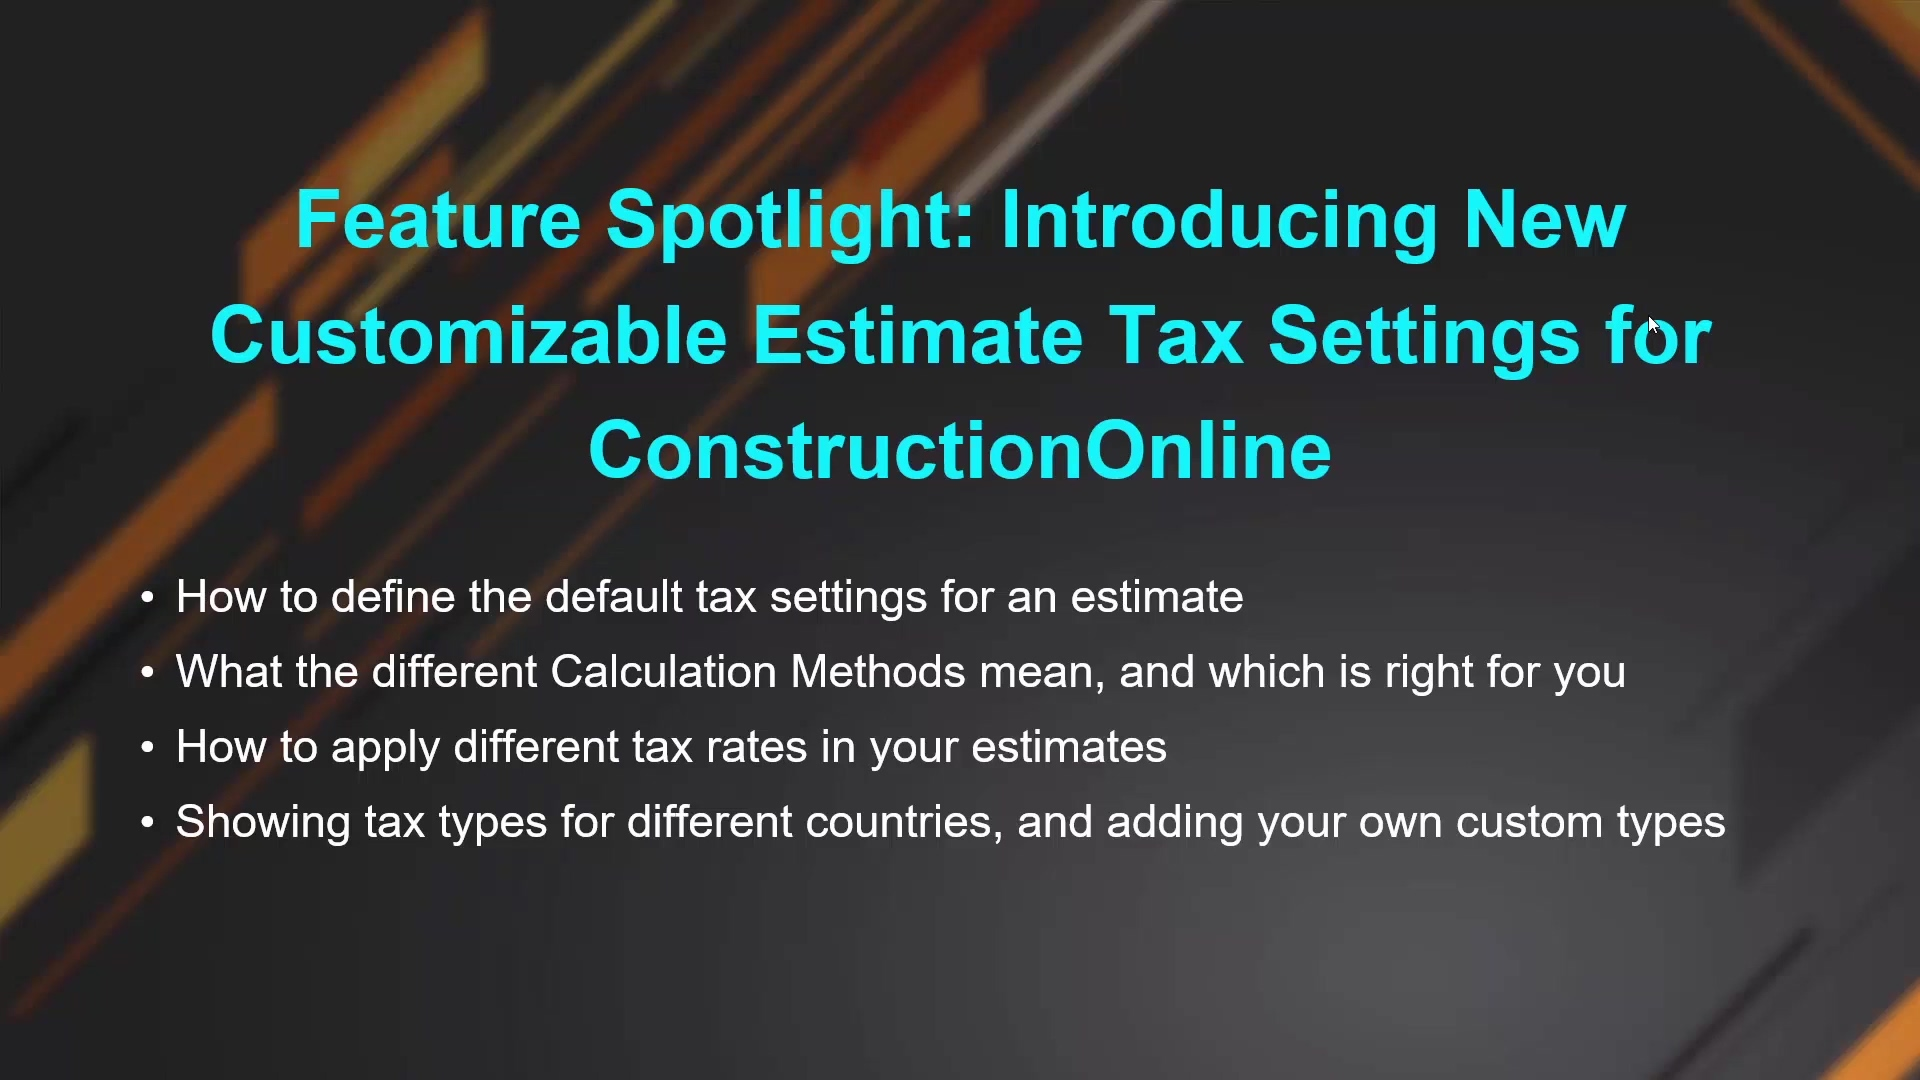 Feature Spotlight - Introducing New Customizable Estimate Tax Settings for ConstructionOnline